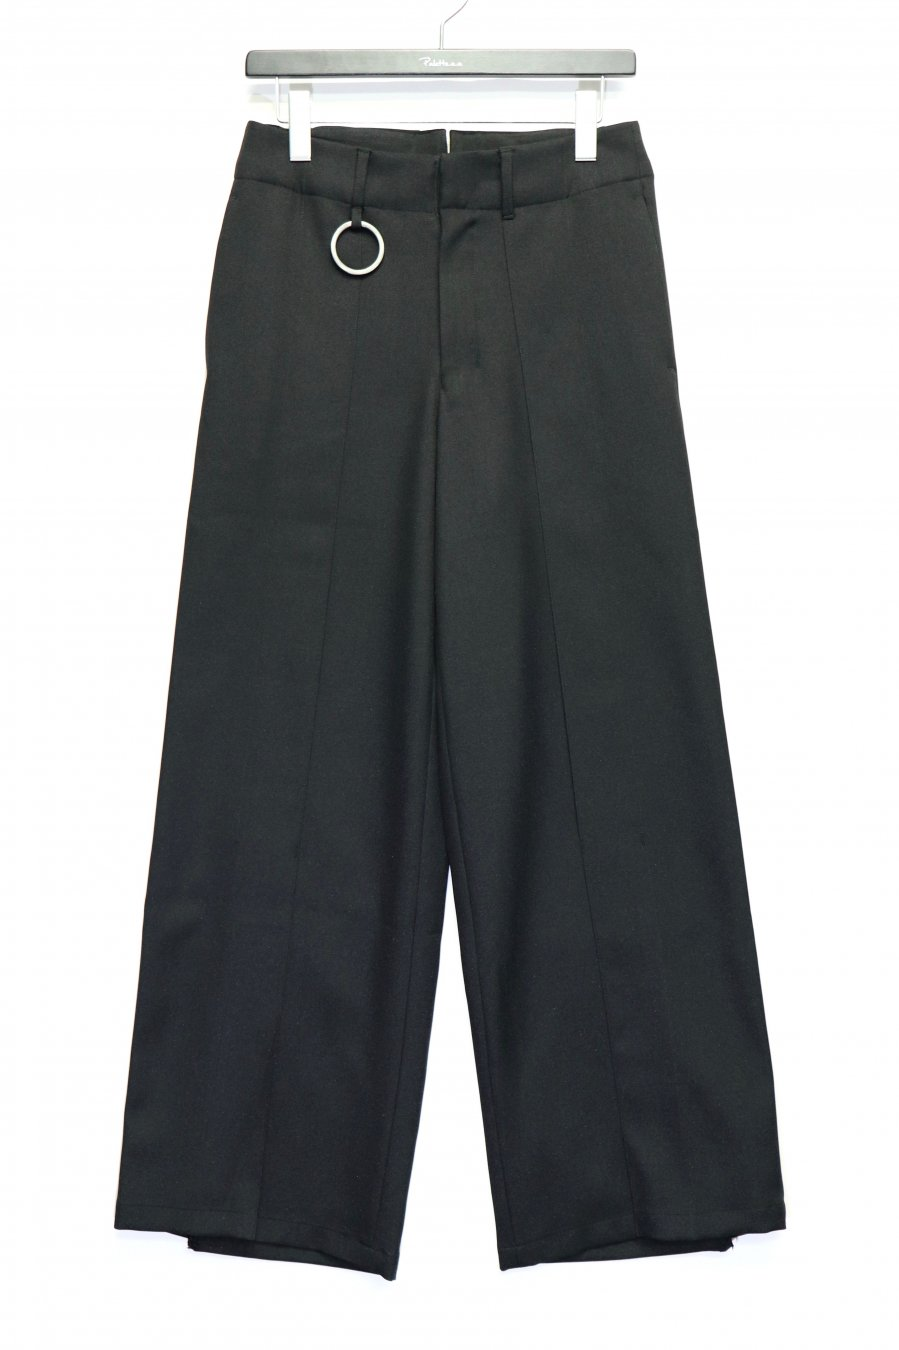 [ー]MINUS  WIDE&FLARE TROUSERS<img class='new_mark_img2' src='https://img.shop-pro.jp/img/new/icons15.gif' style='border:none;display:inline;margin:0px;padding:0px;width:auto;' />